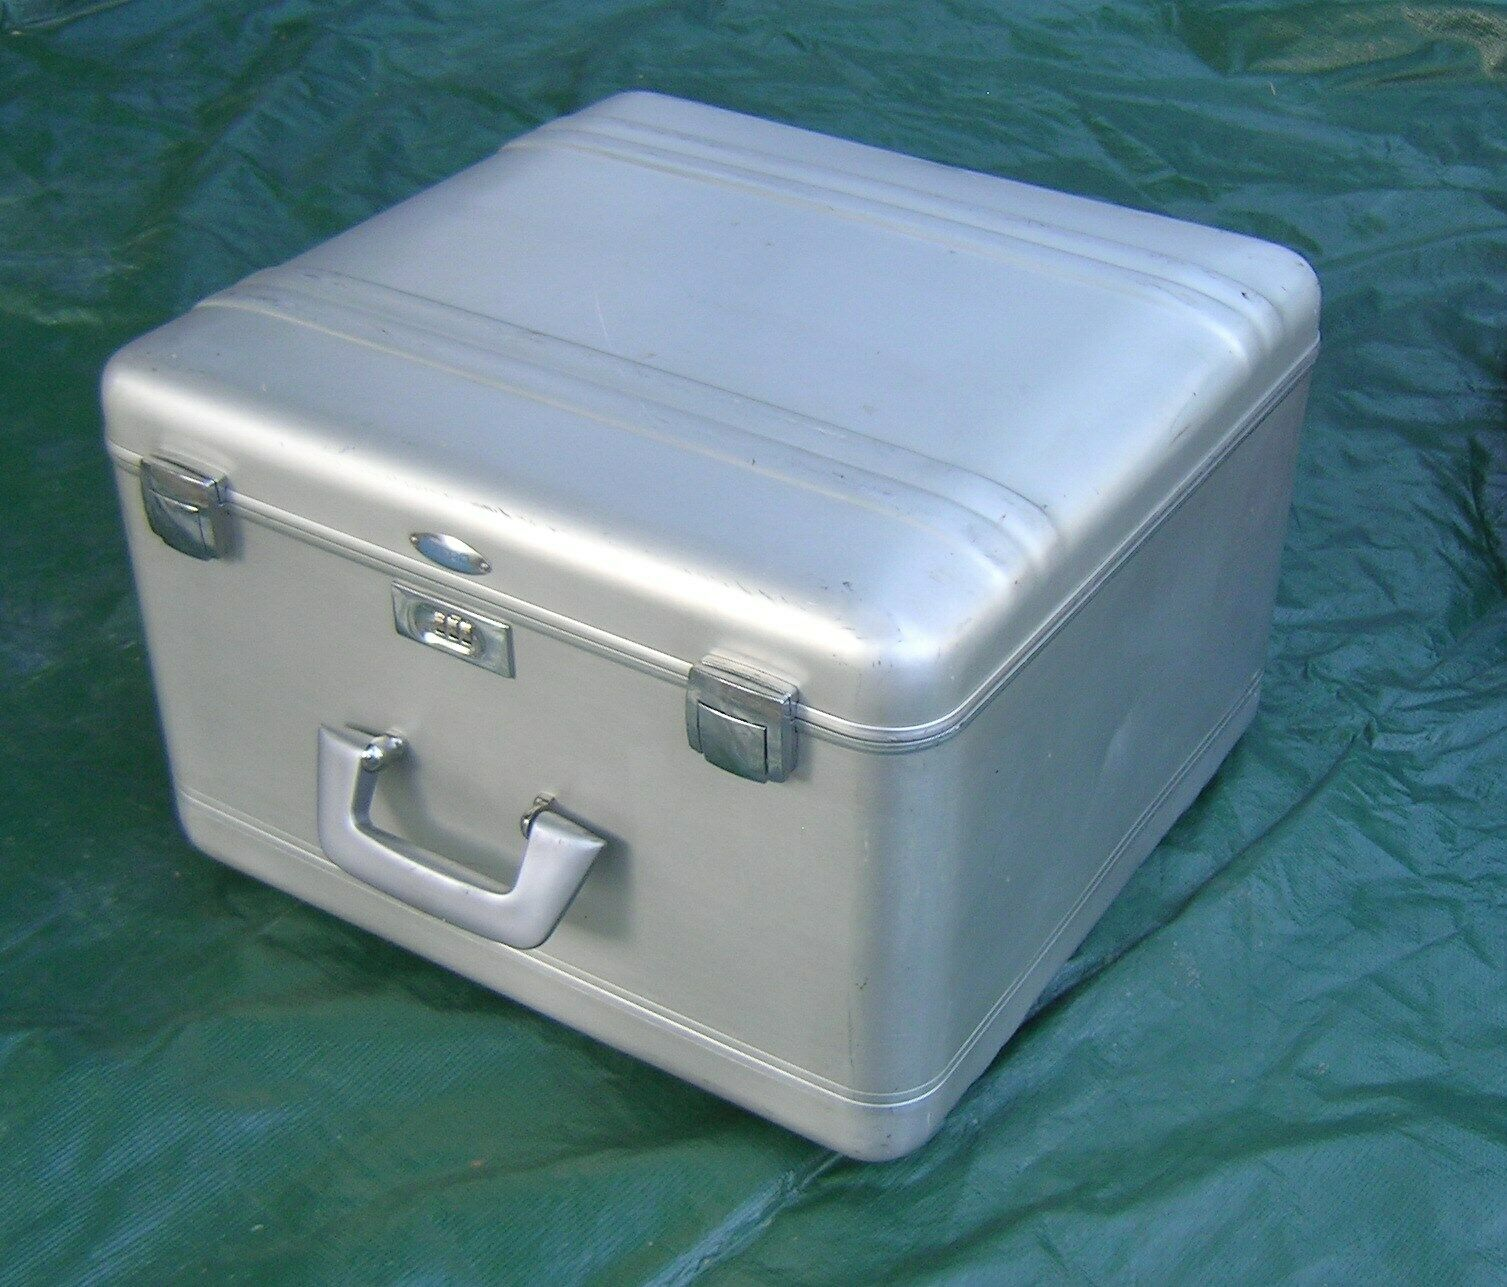 Halliburton Zero Aluminum Traveling Storage Luggage Case Vintage Camera Video  - $170.00